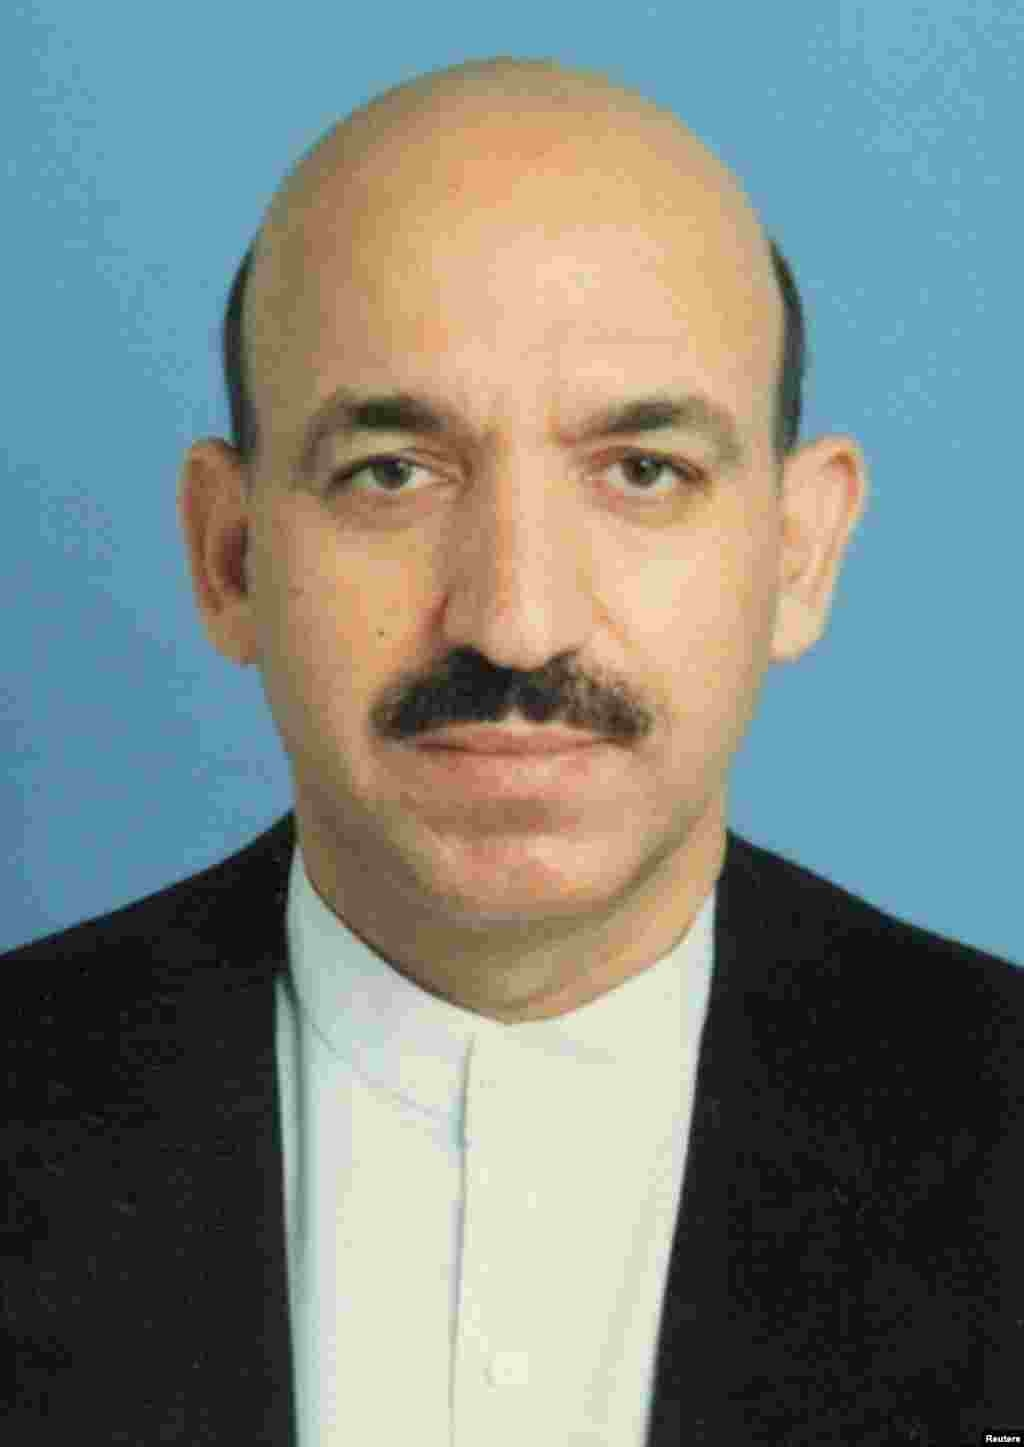 A mustachioed Karzai in a 2001 file photo, shortly before he was named on December 5 of that year as chaiman of the Afghan interim administration during a UN-sponsored conference in Bonn, Germany.